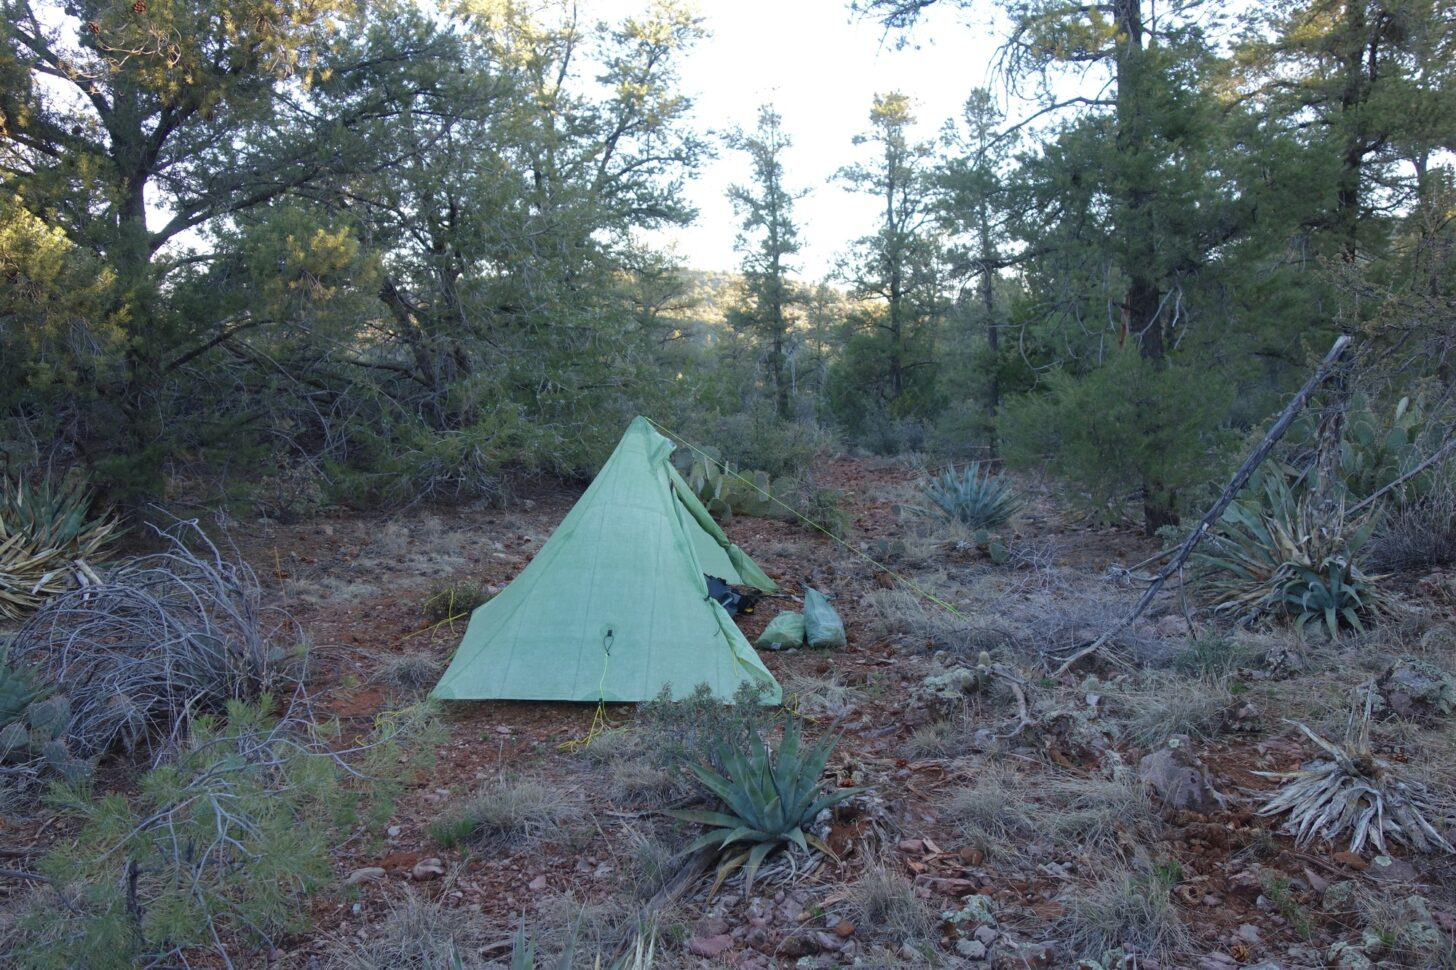 a pyramid style tent pitched under a small stand of trees.